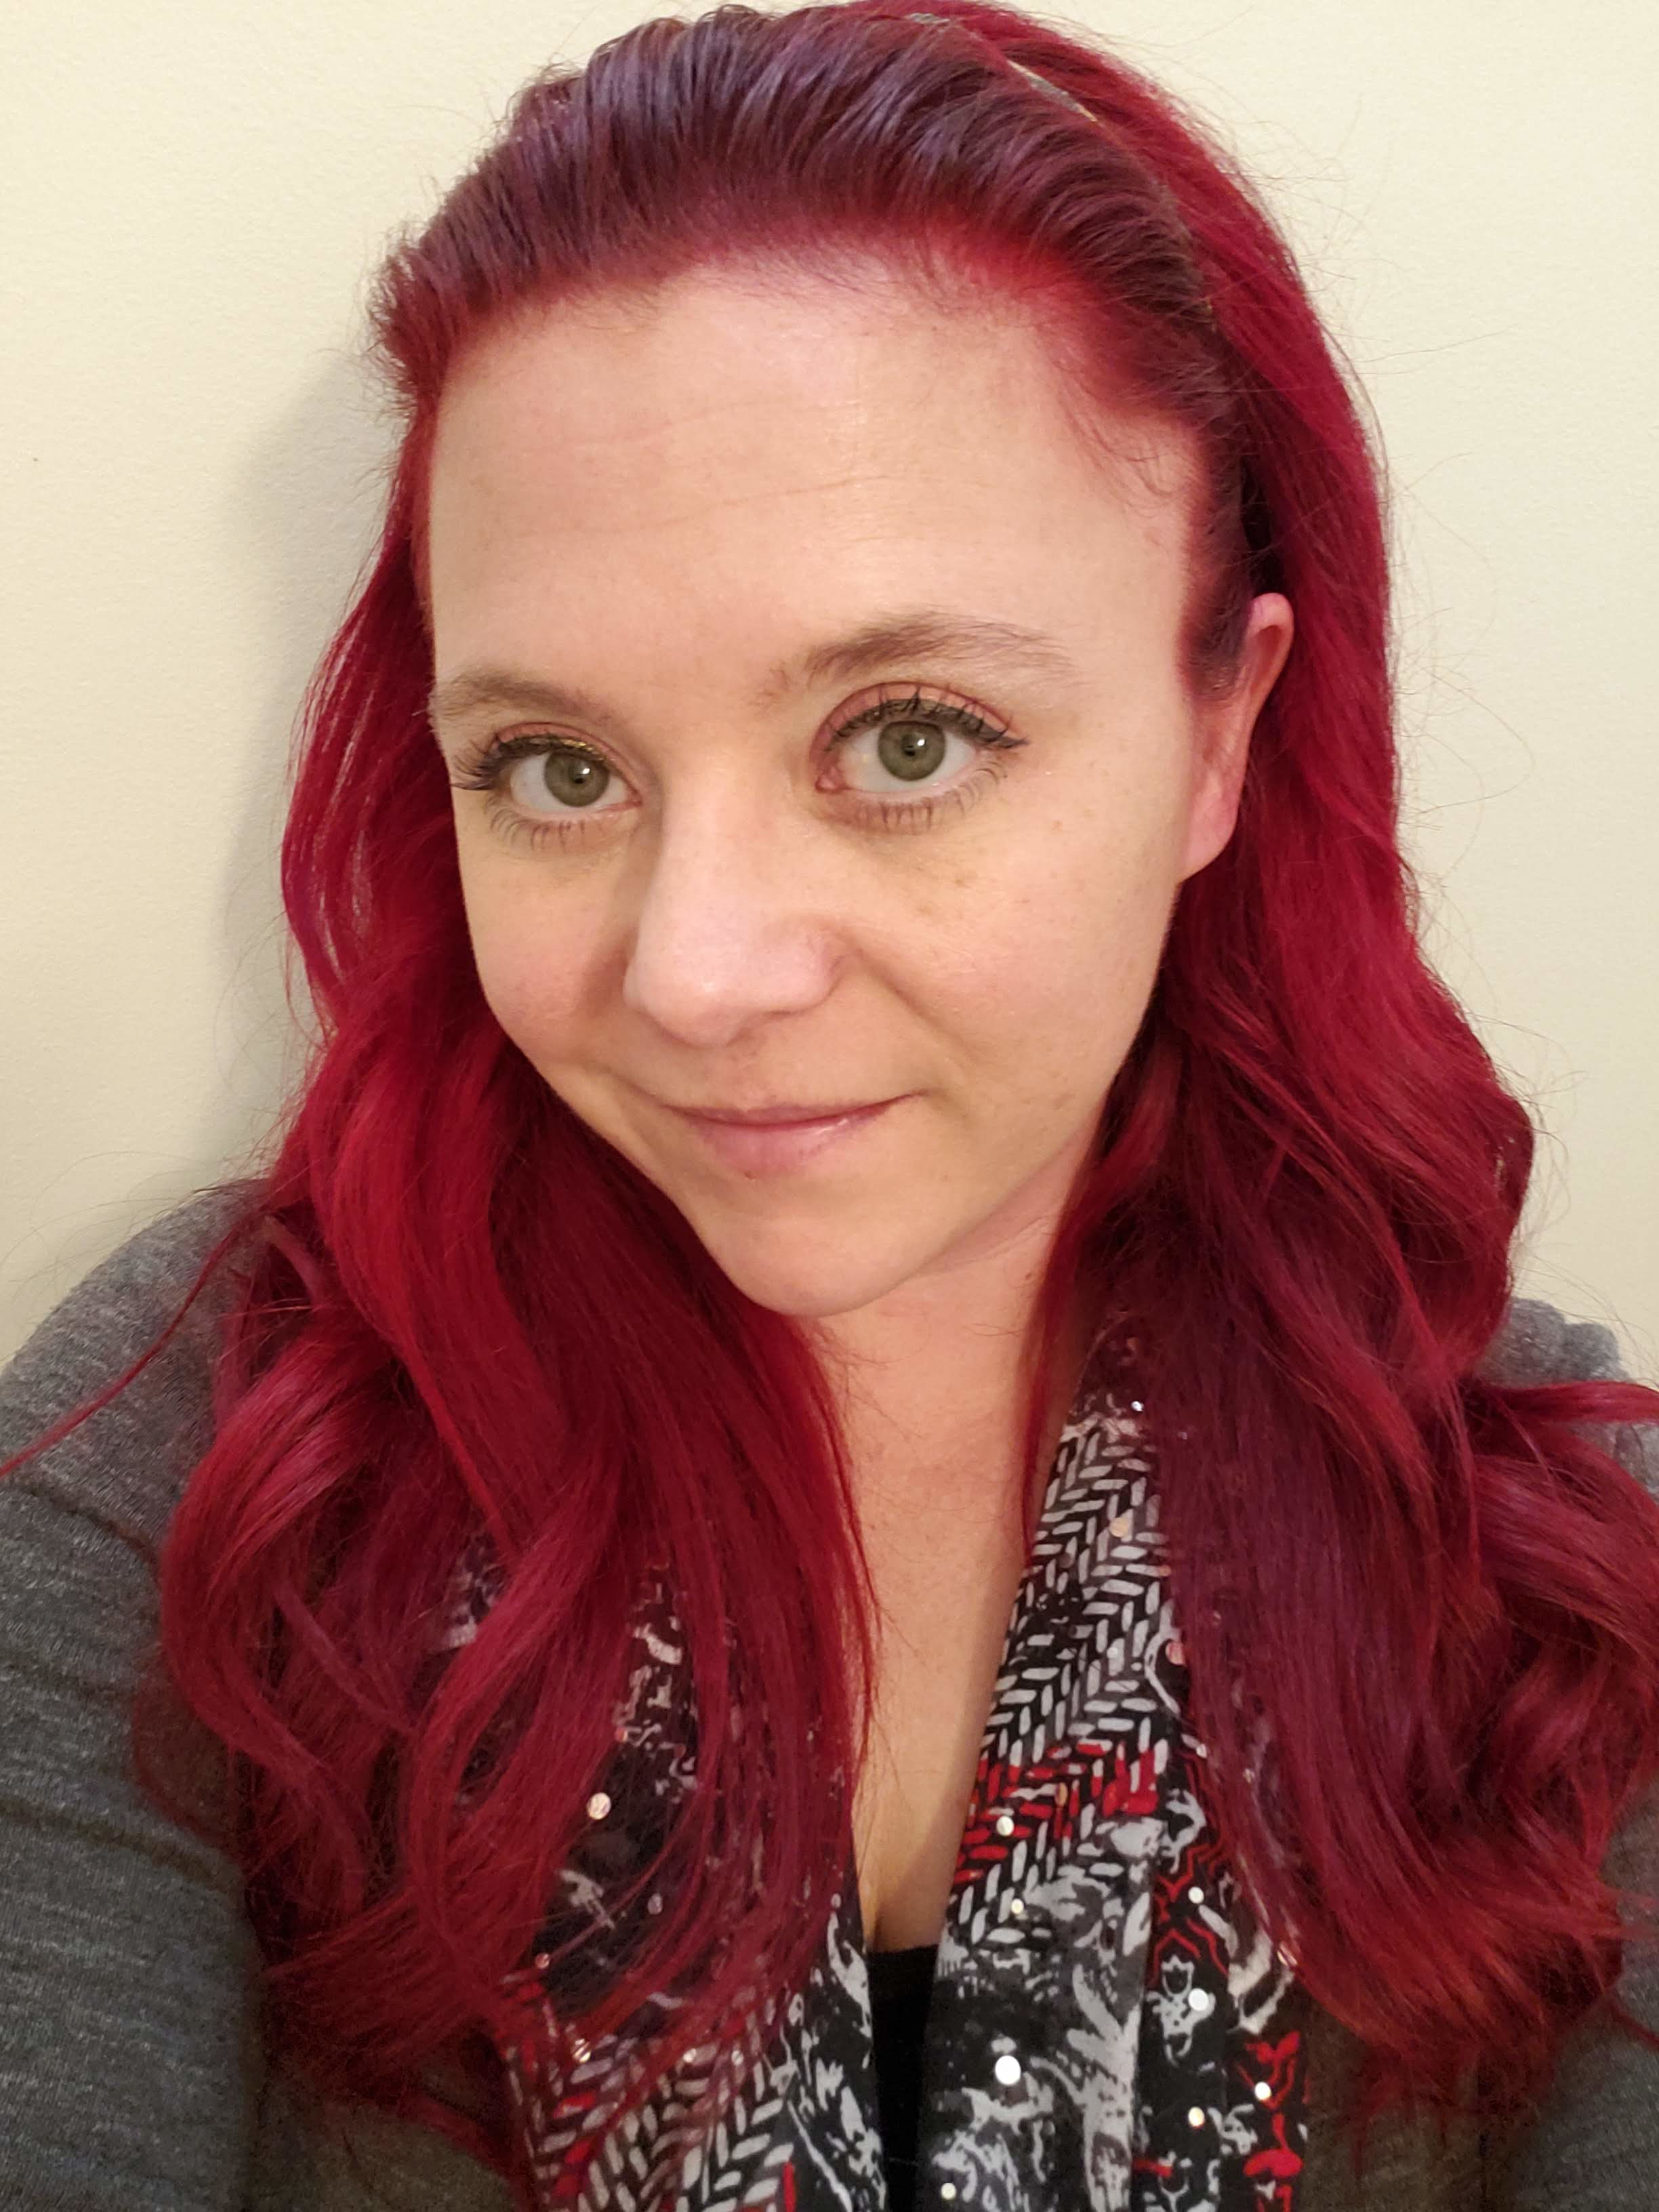 Profile picture of me with red hair, face forward, gray sweater and a printed scarf.